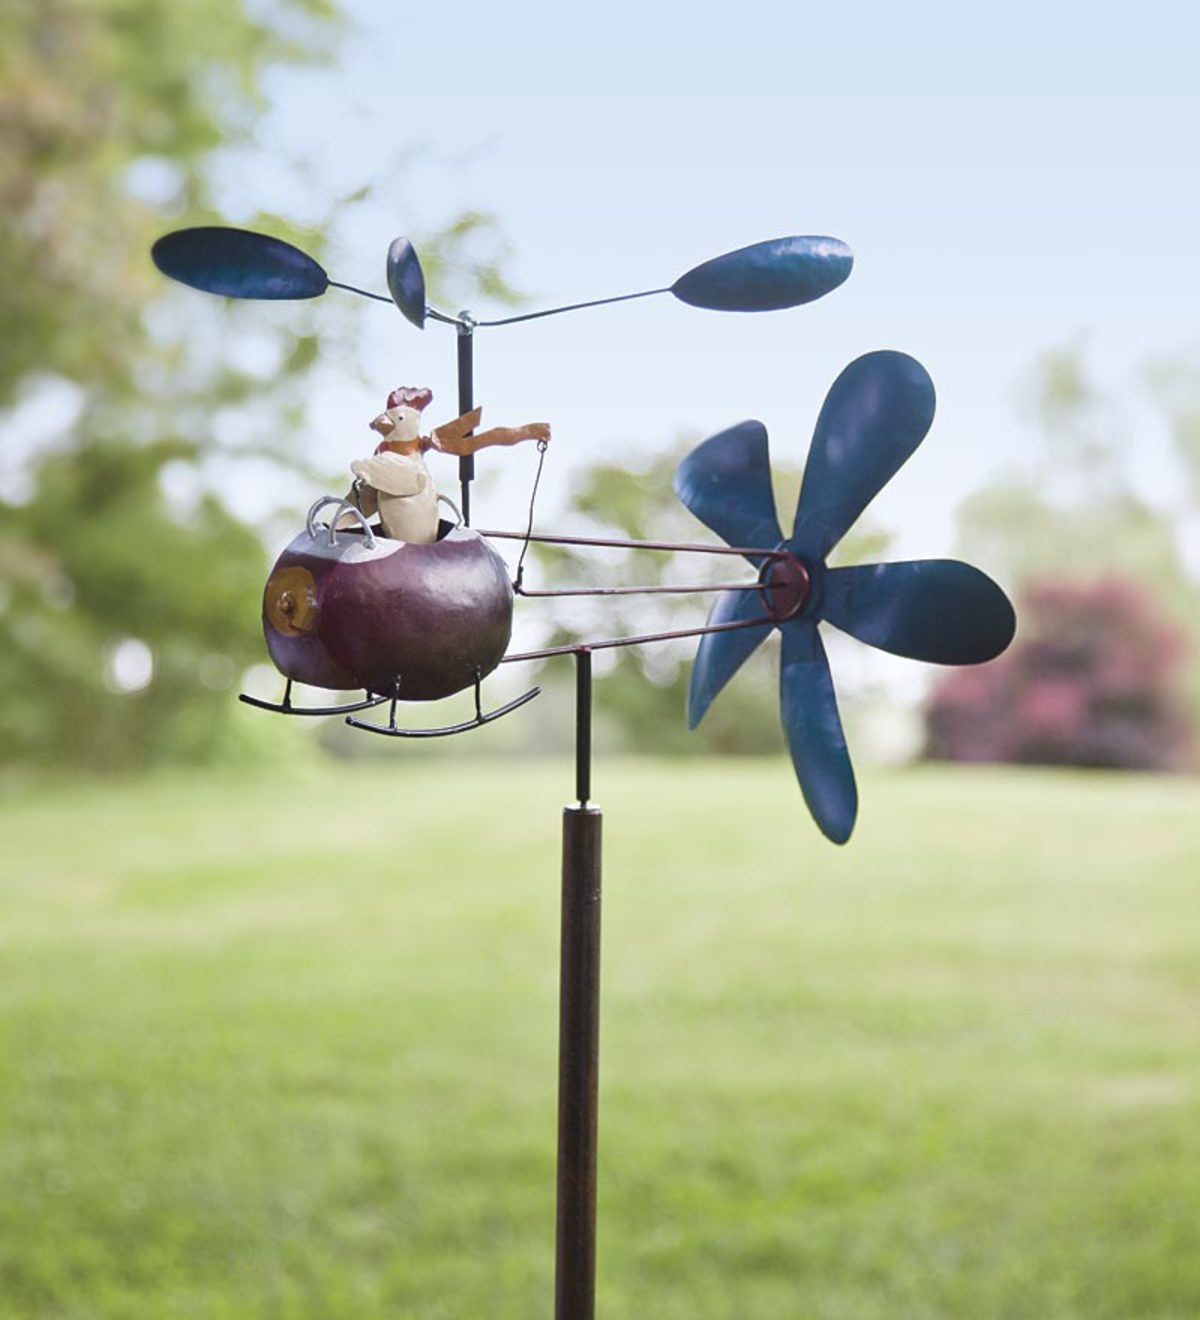 Chicken and Helicopter Recycled Metal Whirligig